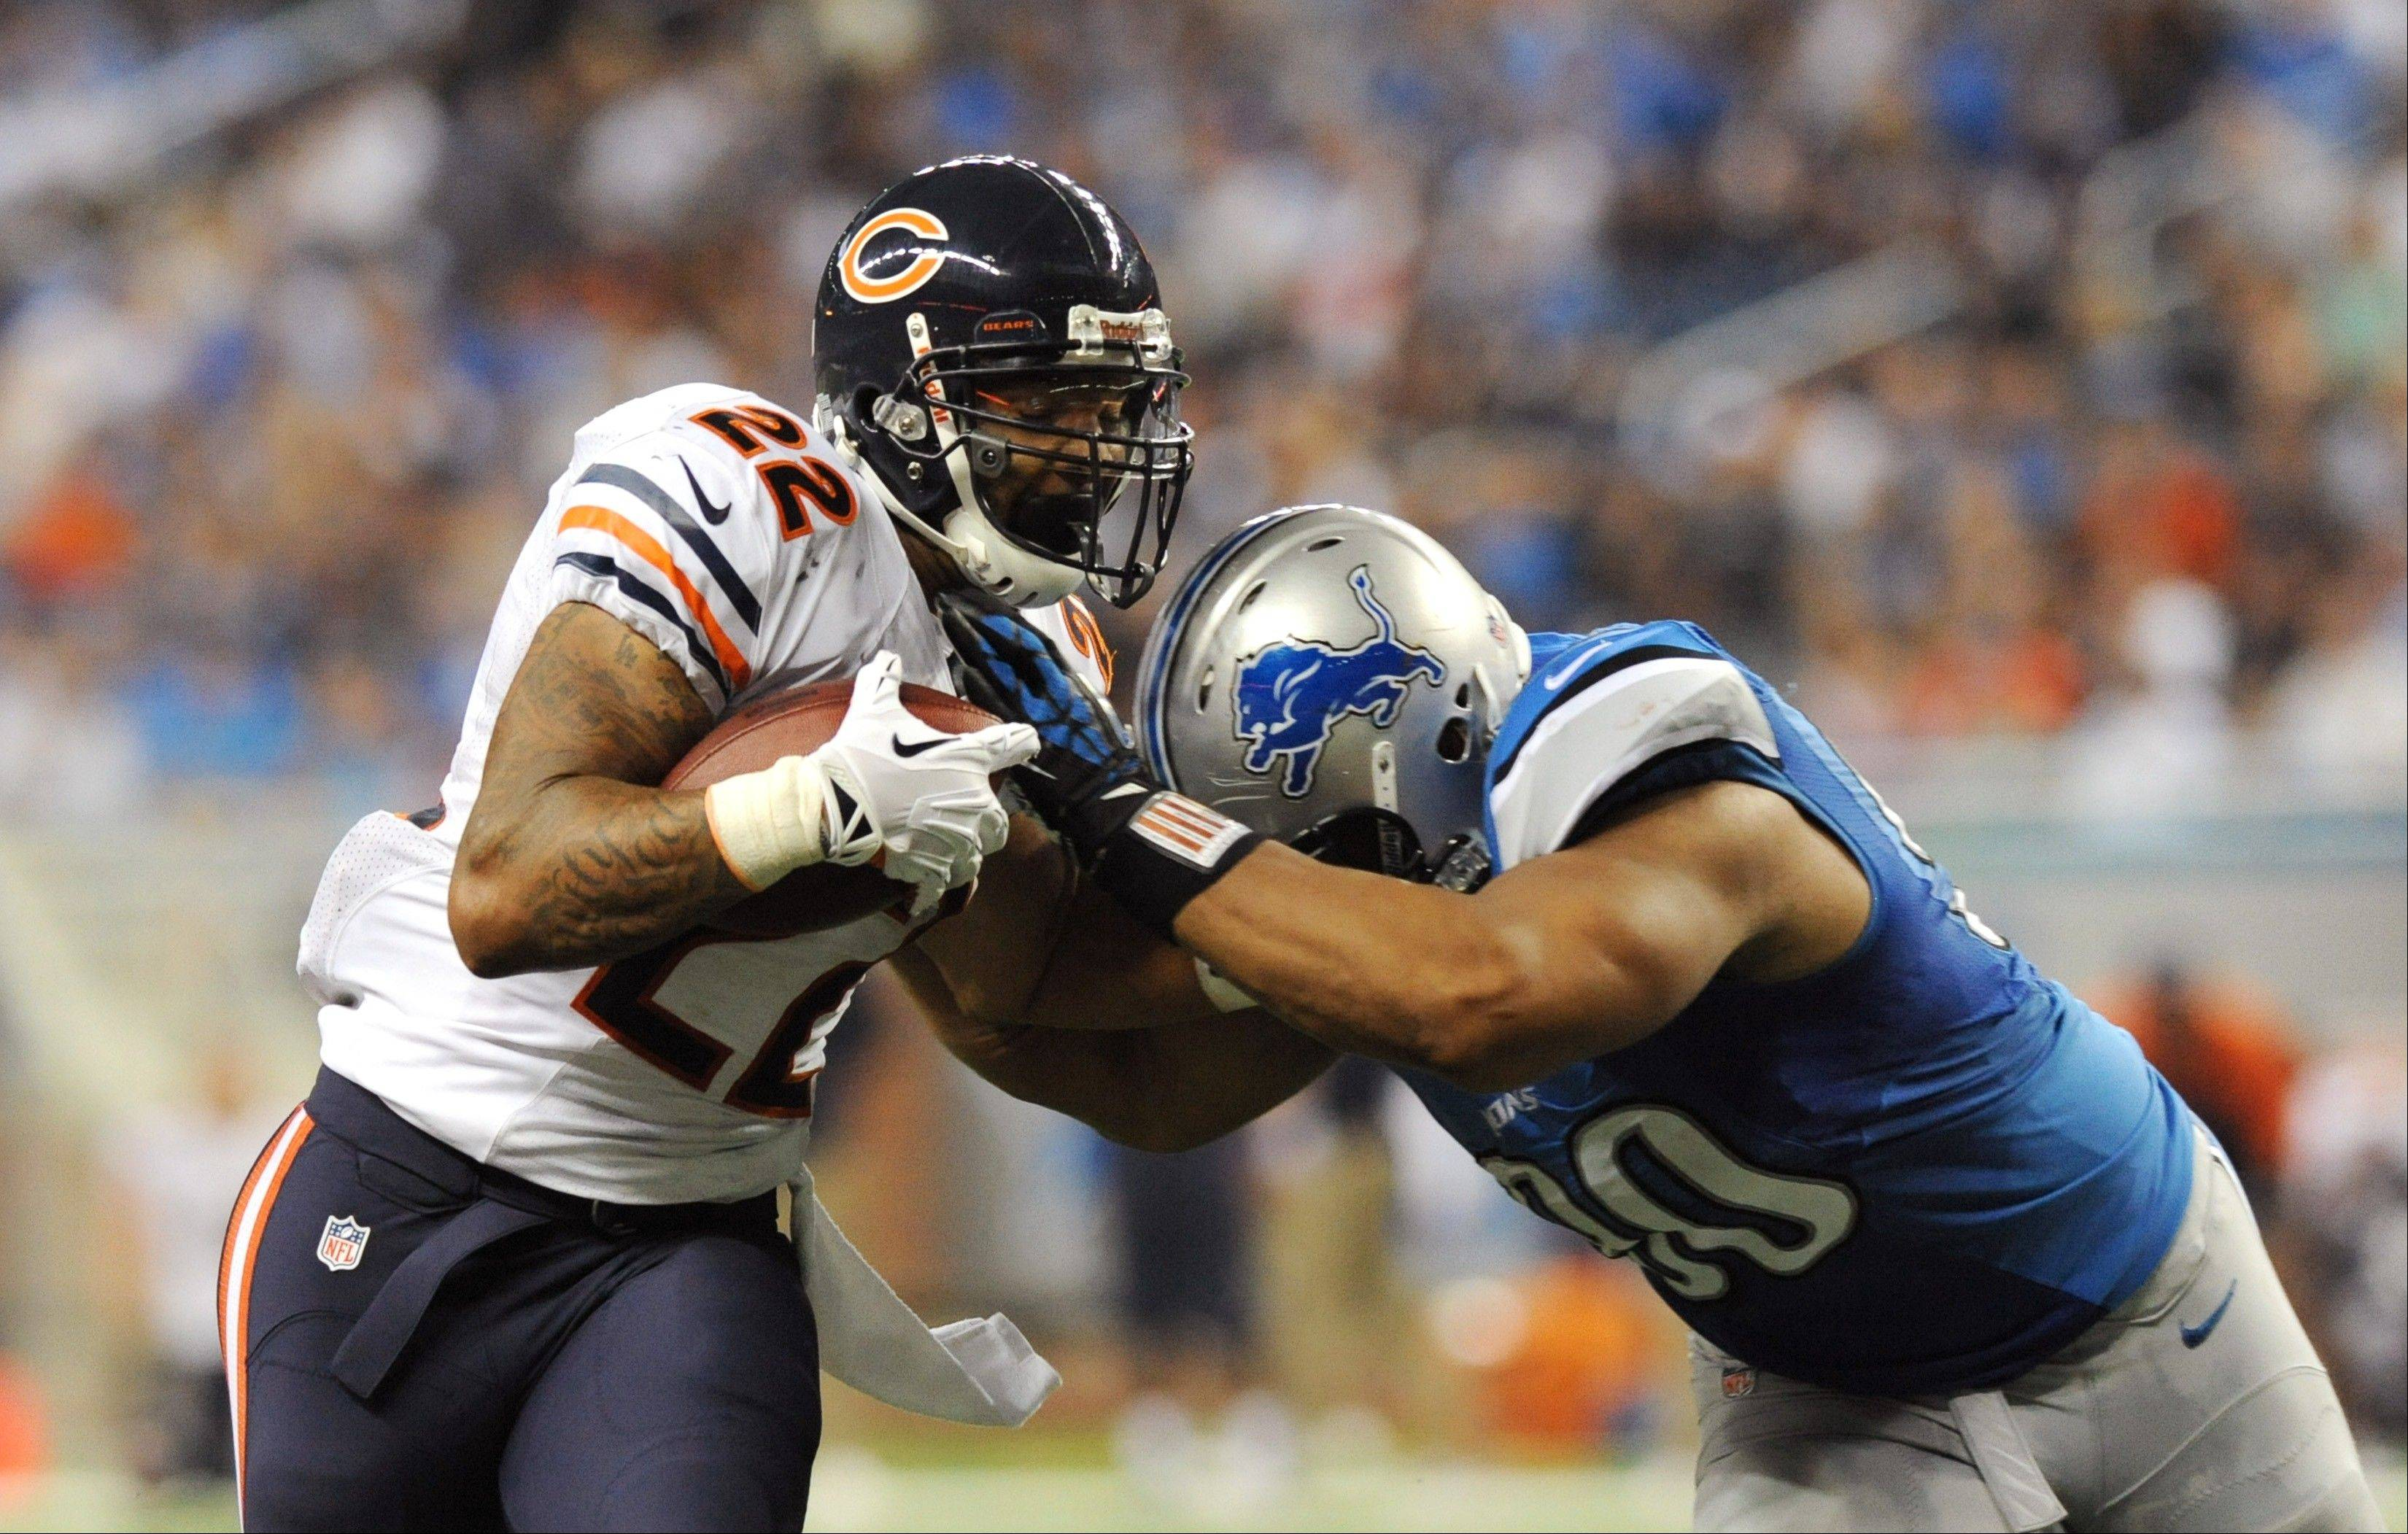 Chicago Bears running back Matt Forte (22) is stopped by Detroit Lions defensive tackle Ndamukong Suh (90) during the third quarter.